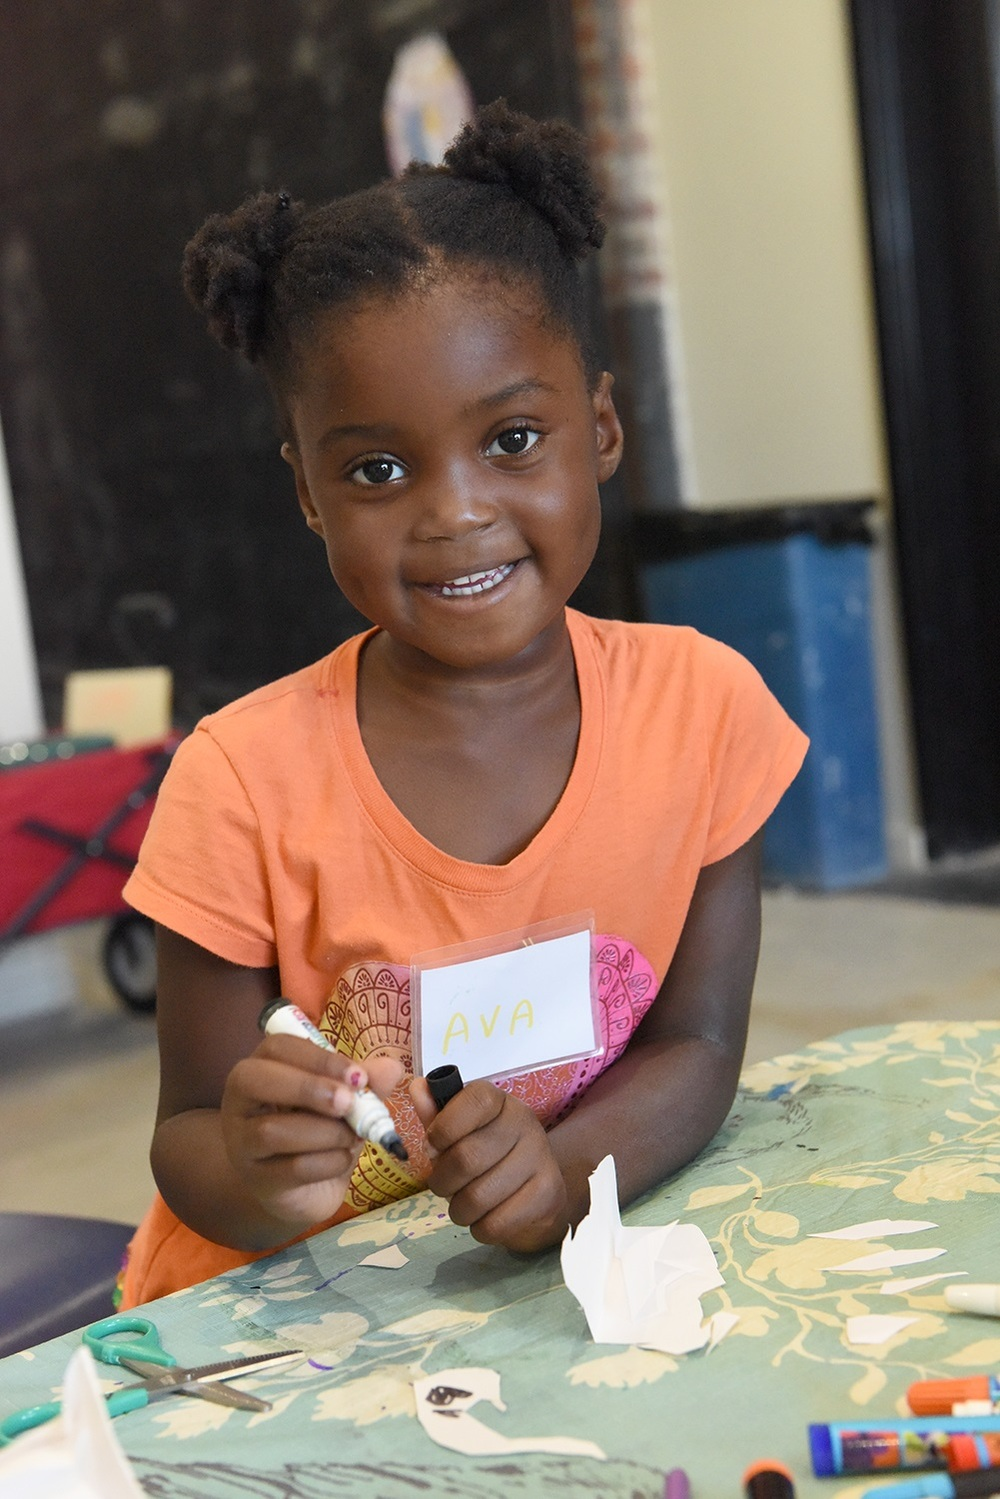 2016 CP Grant Blog Clay Camp Week 5 Image 1.jpg